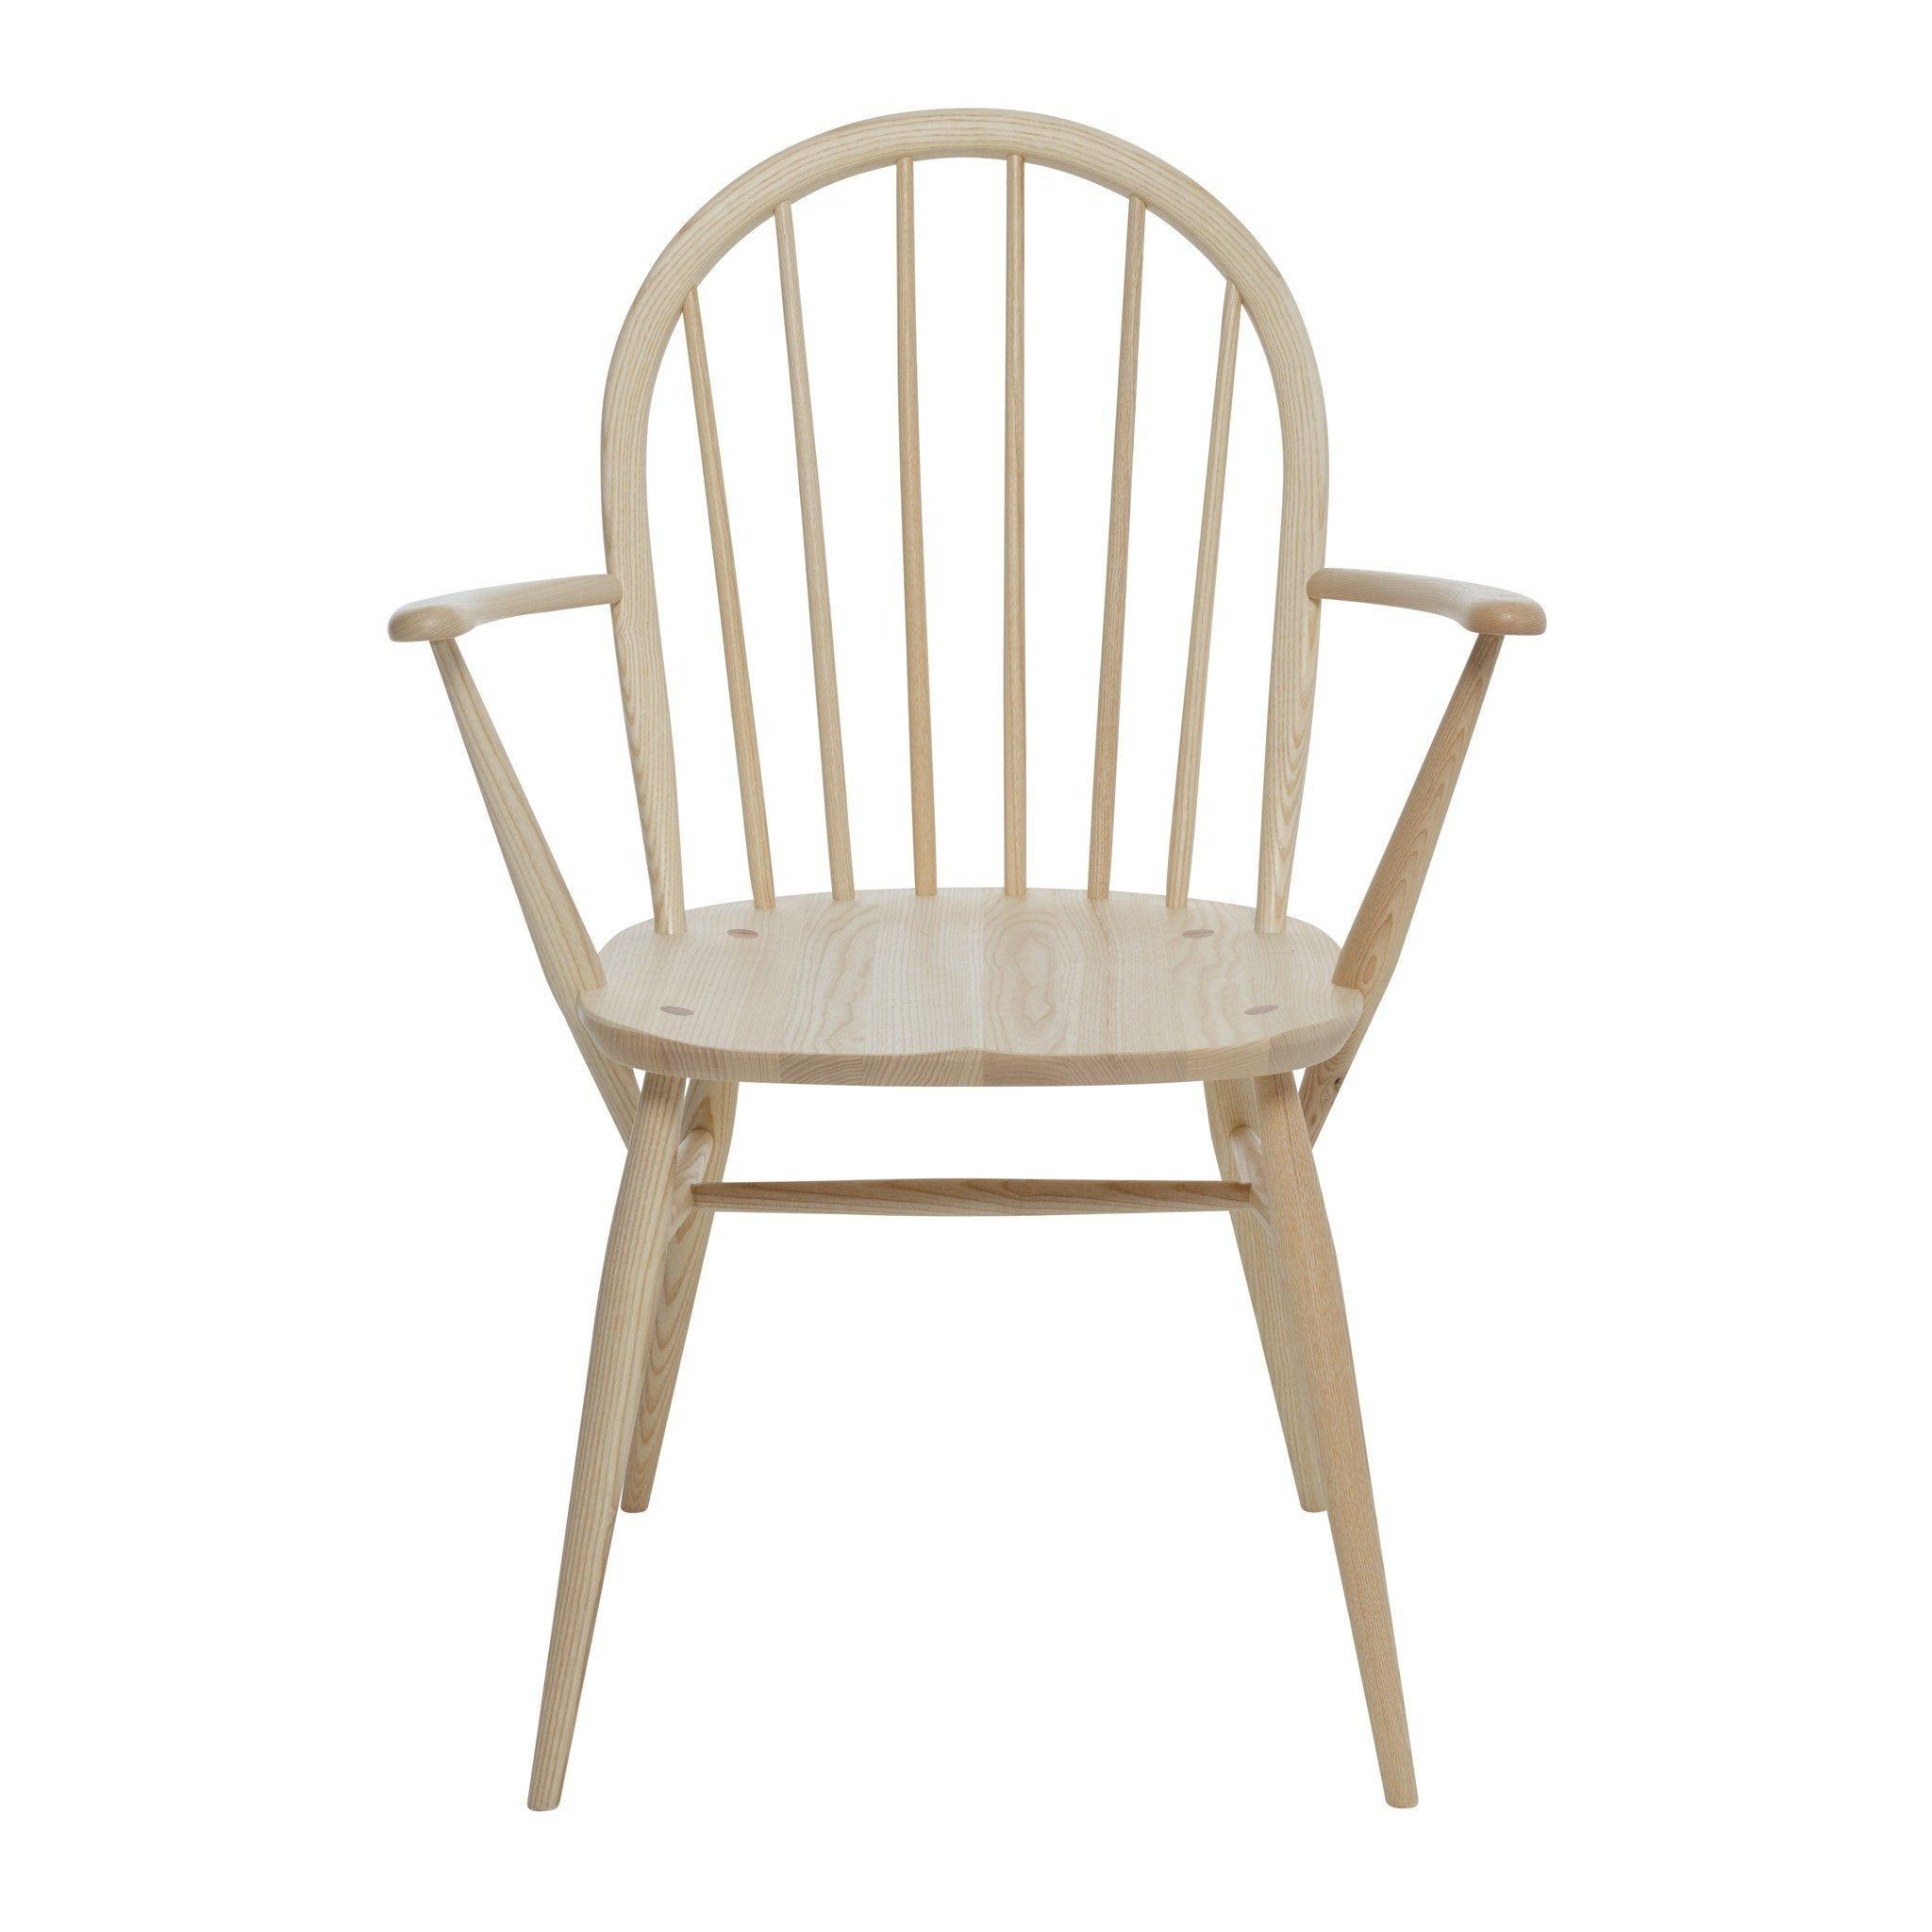 Originals Windsor Armchair by Ercol